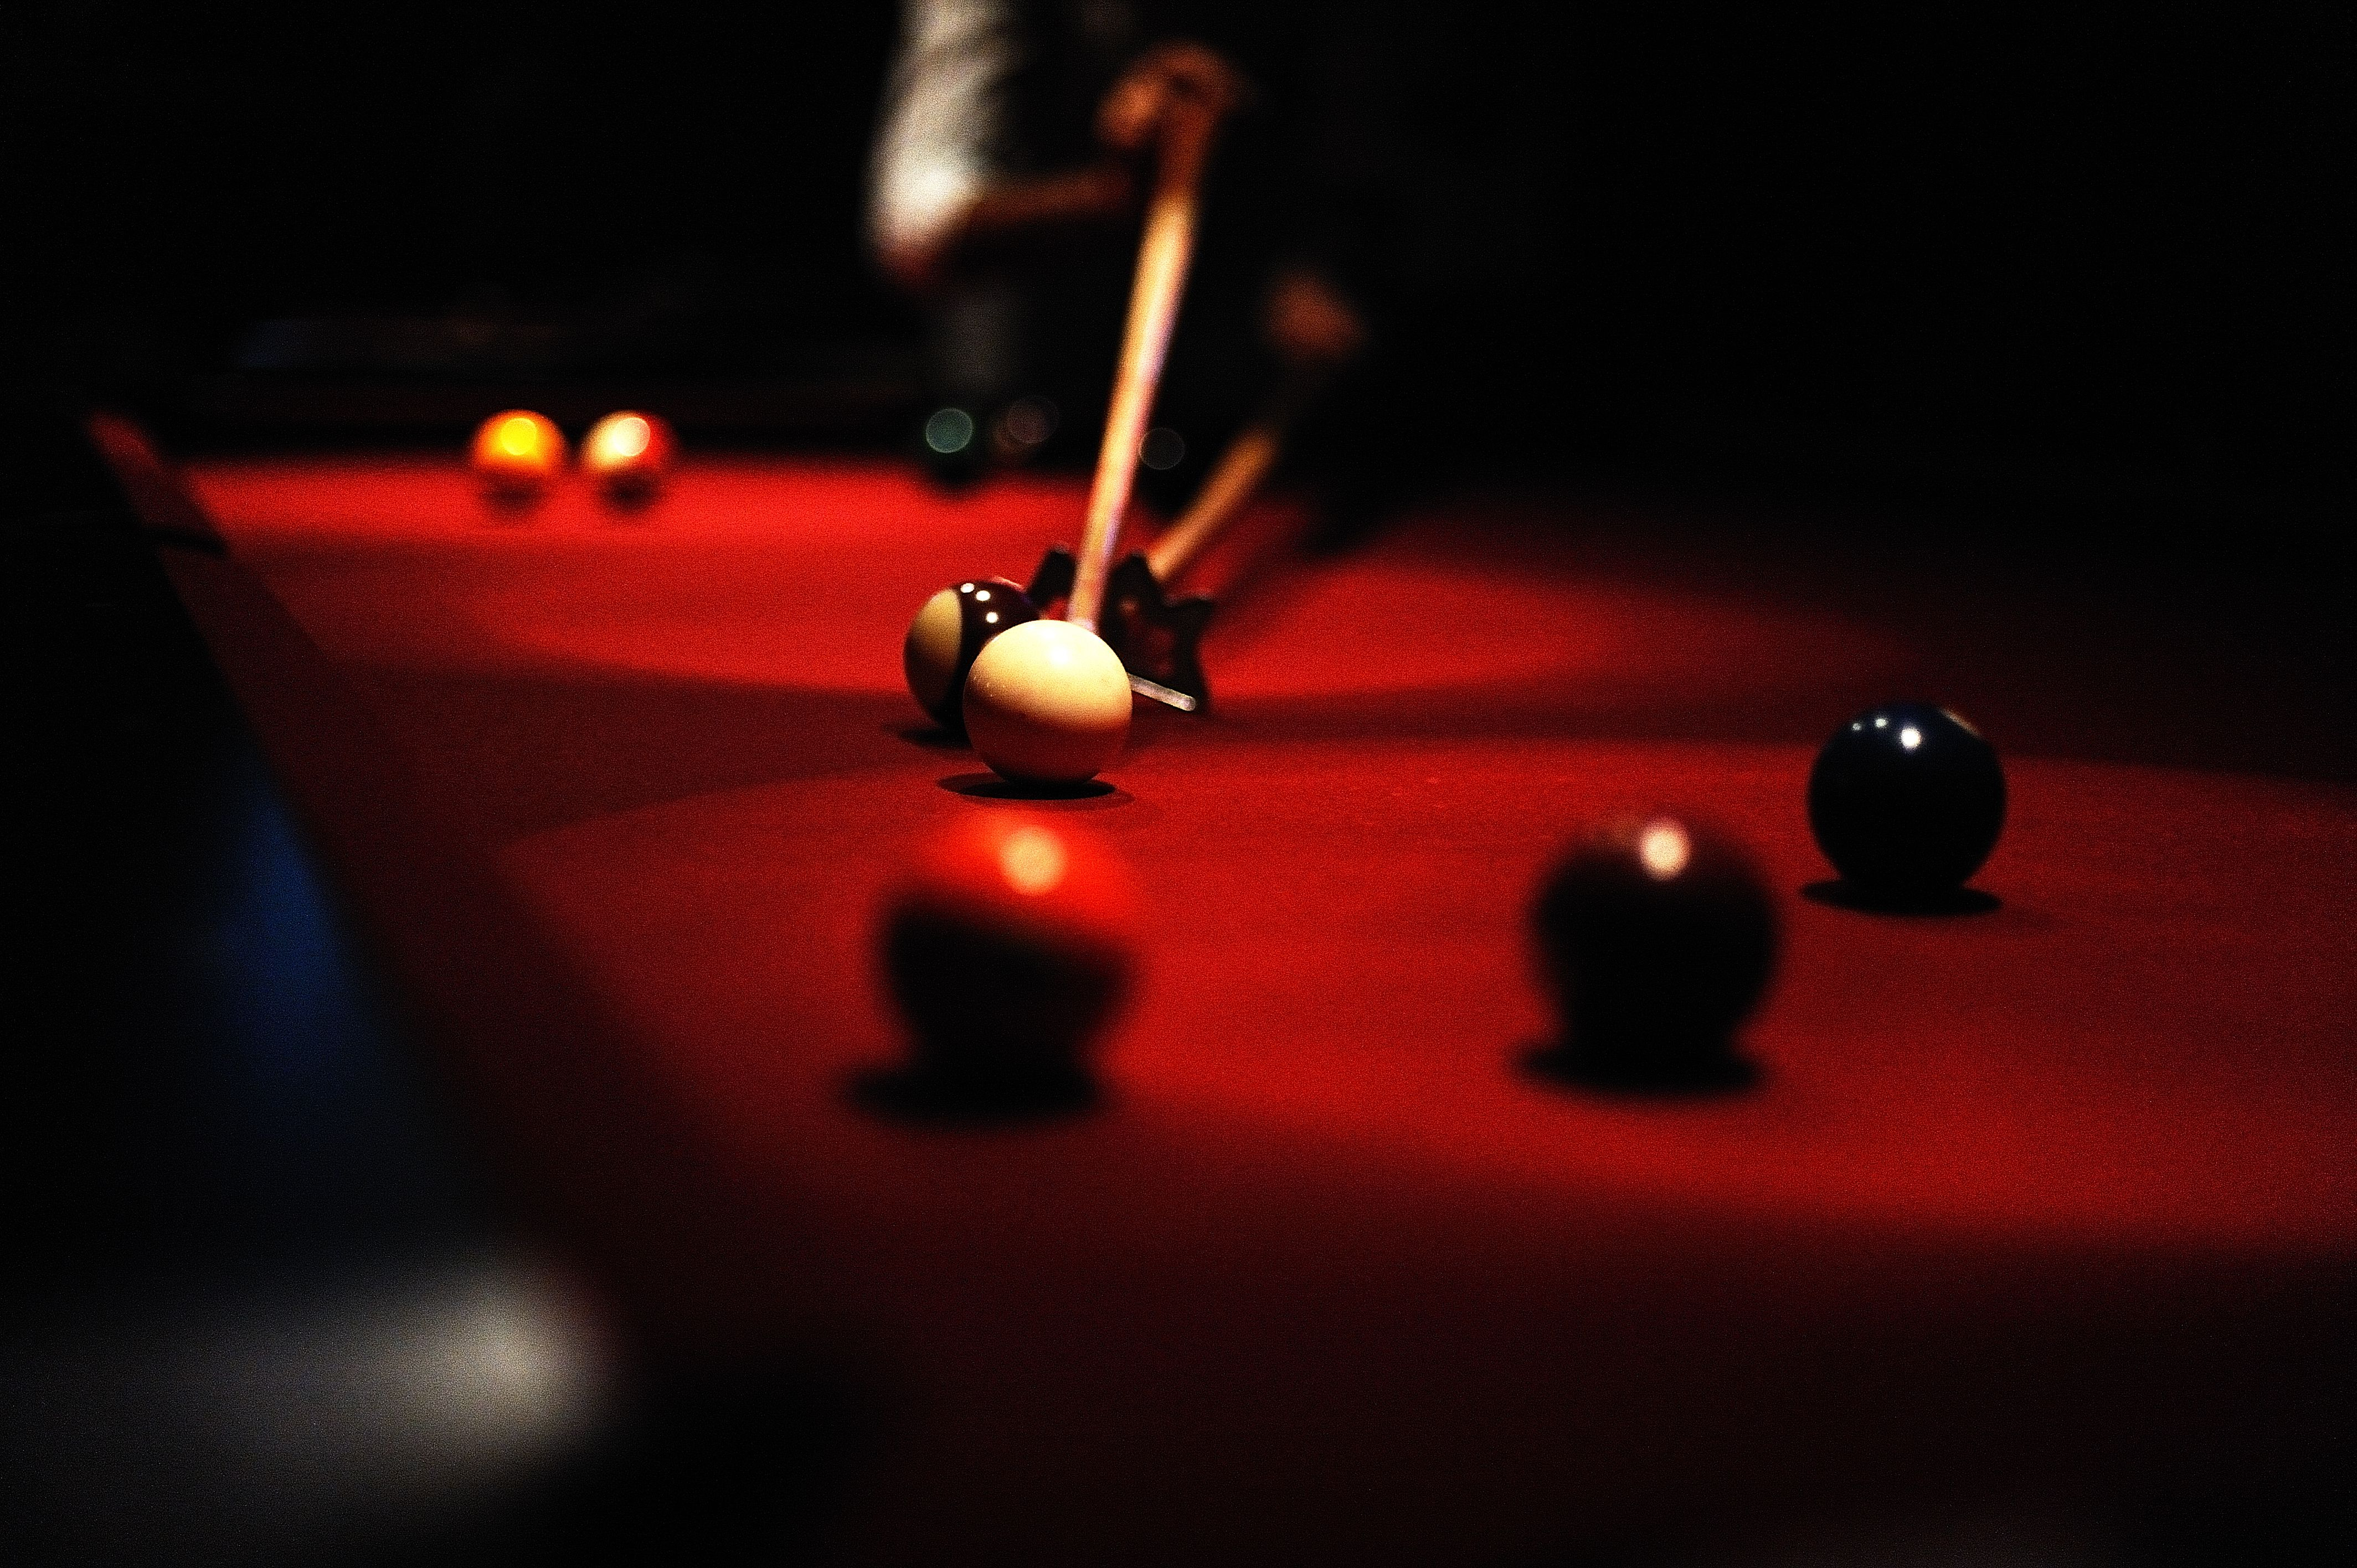 8-Ball Pool Game Rules And Strategy